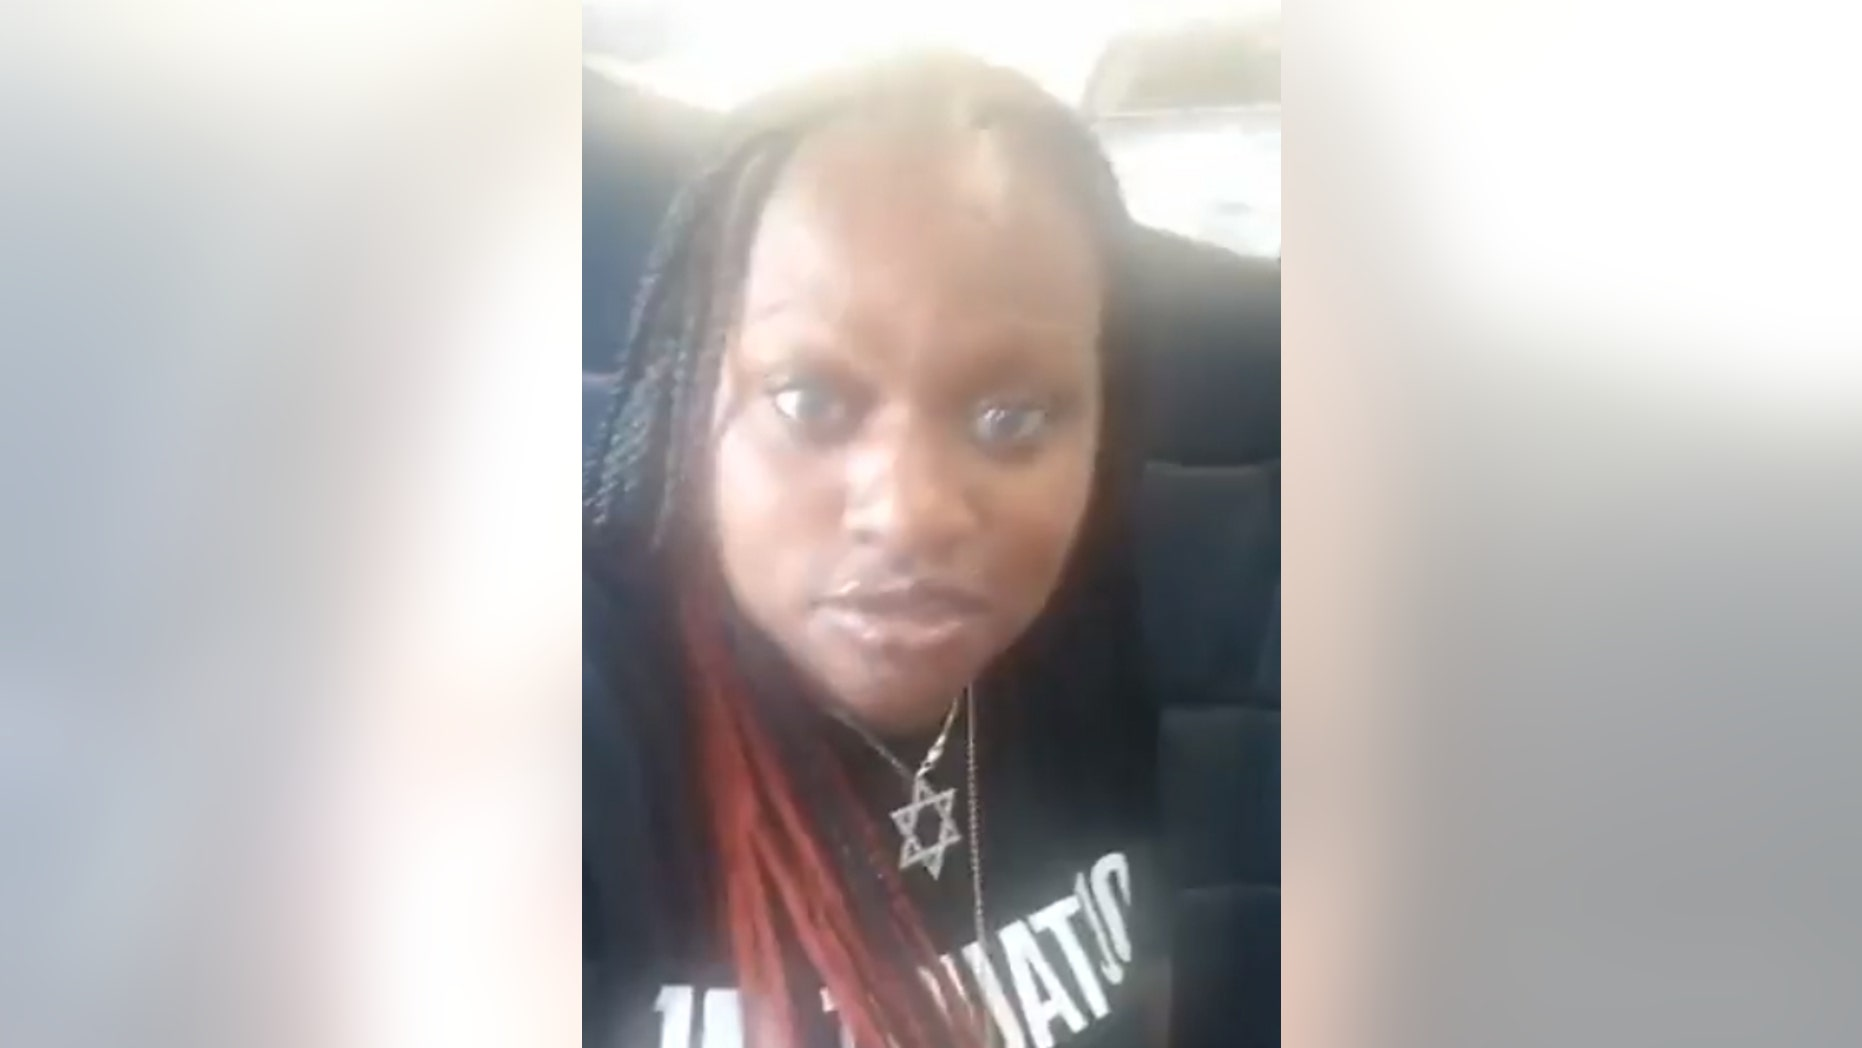 Safira Allen, 25, filmed the entire ordeal for Facebook Live as she was getting booted from the flight.